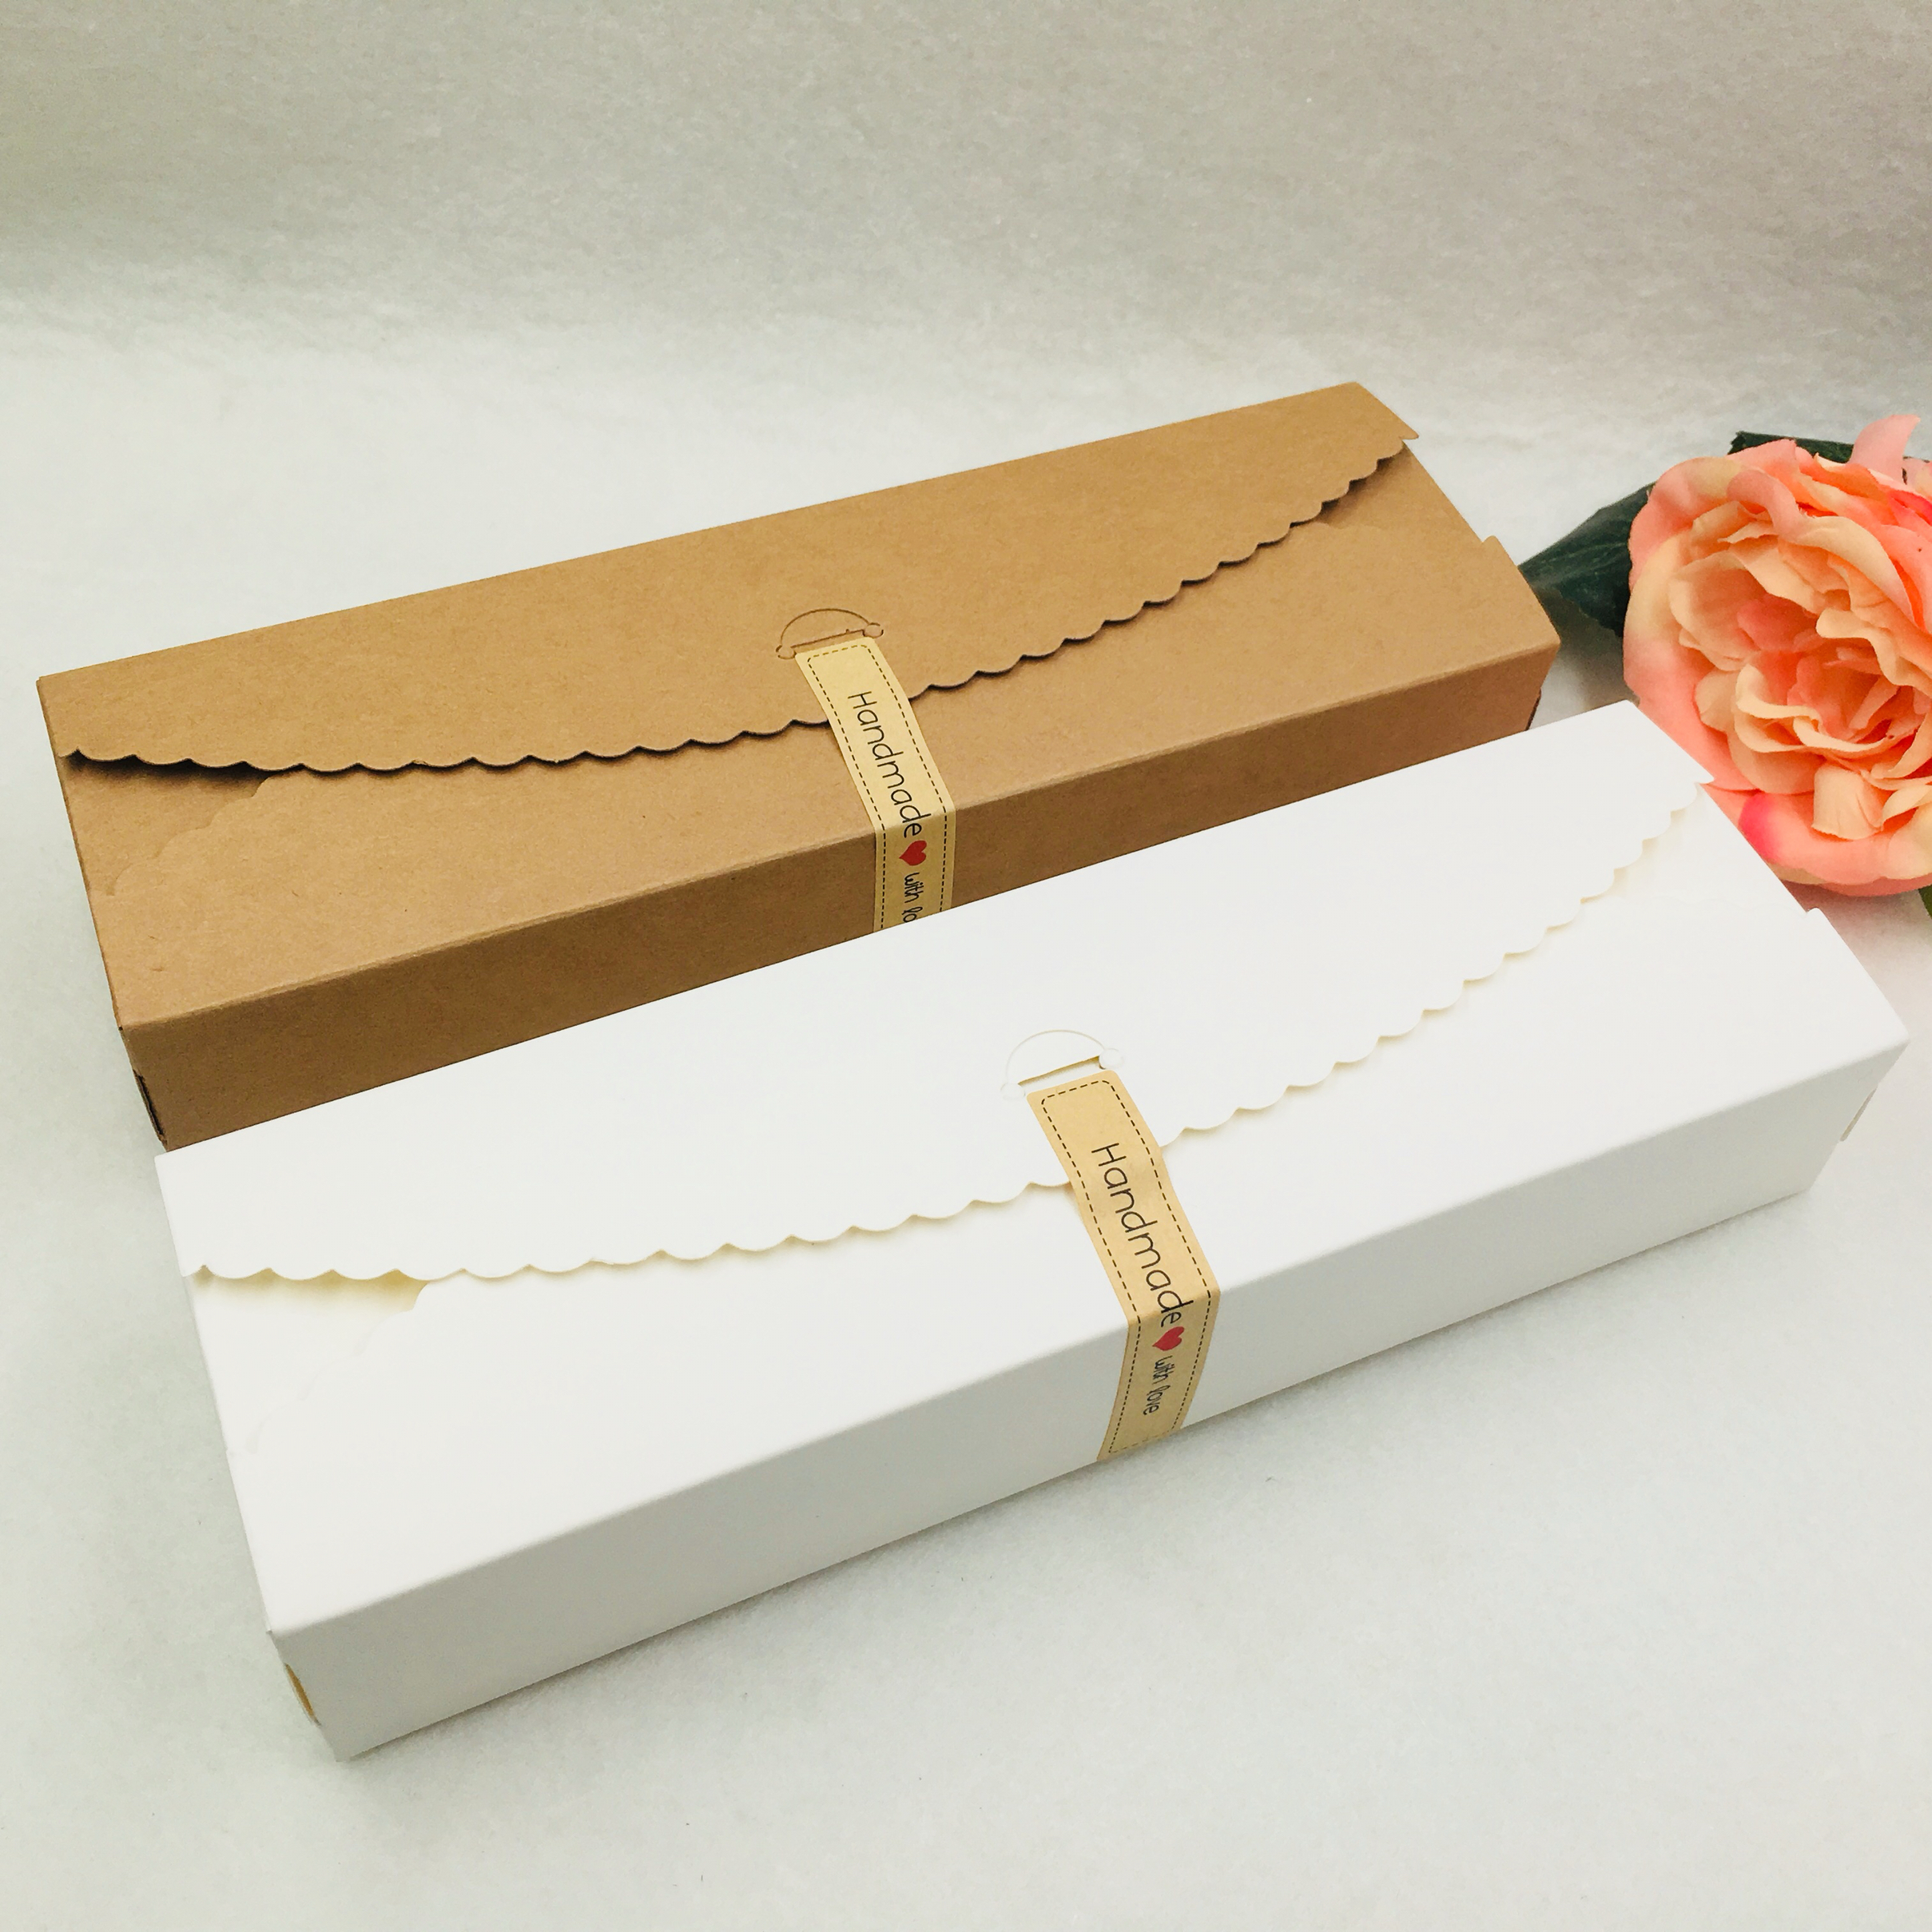 50Pcs/Lot Long Type Packaging Kraft Paper Box Black White Brown Gift Box For Packing Flower/Cake/Candy 23x7x4cm + Free Stickers